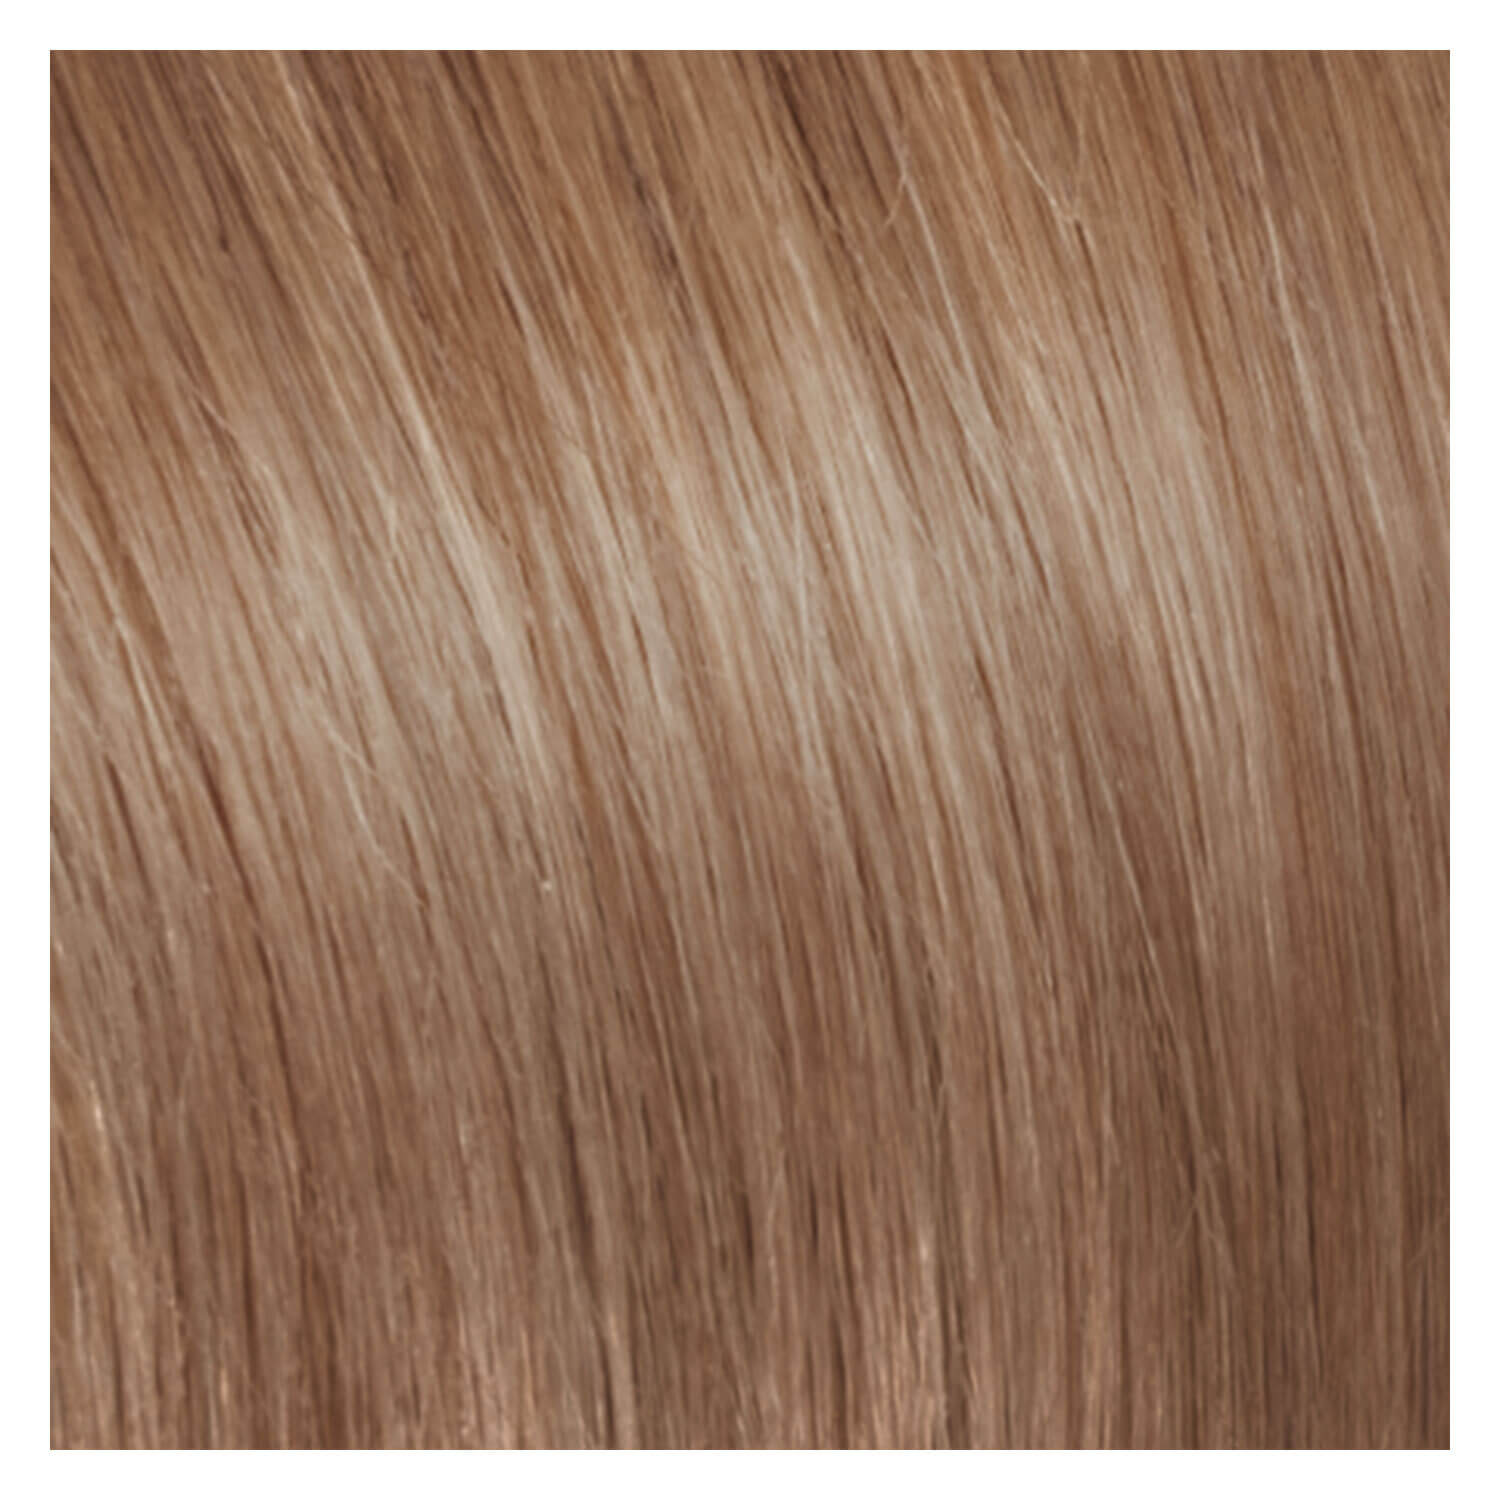 SHE Clip In-System Hair Extensions - 9-teiliges Set 27 Mittel Goldblond 50/55cm